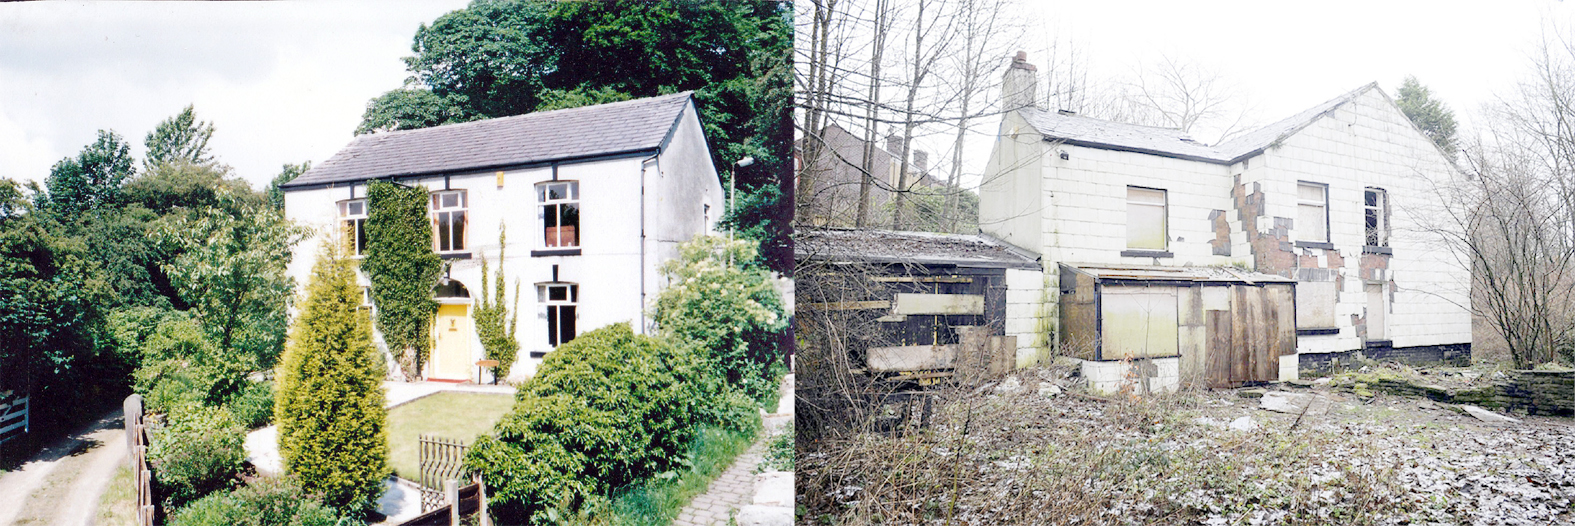 Plea to save historic Ivy Cottage in Smithills